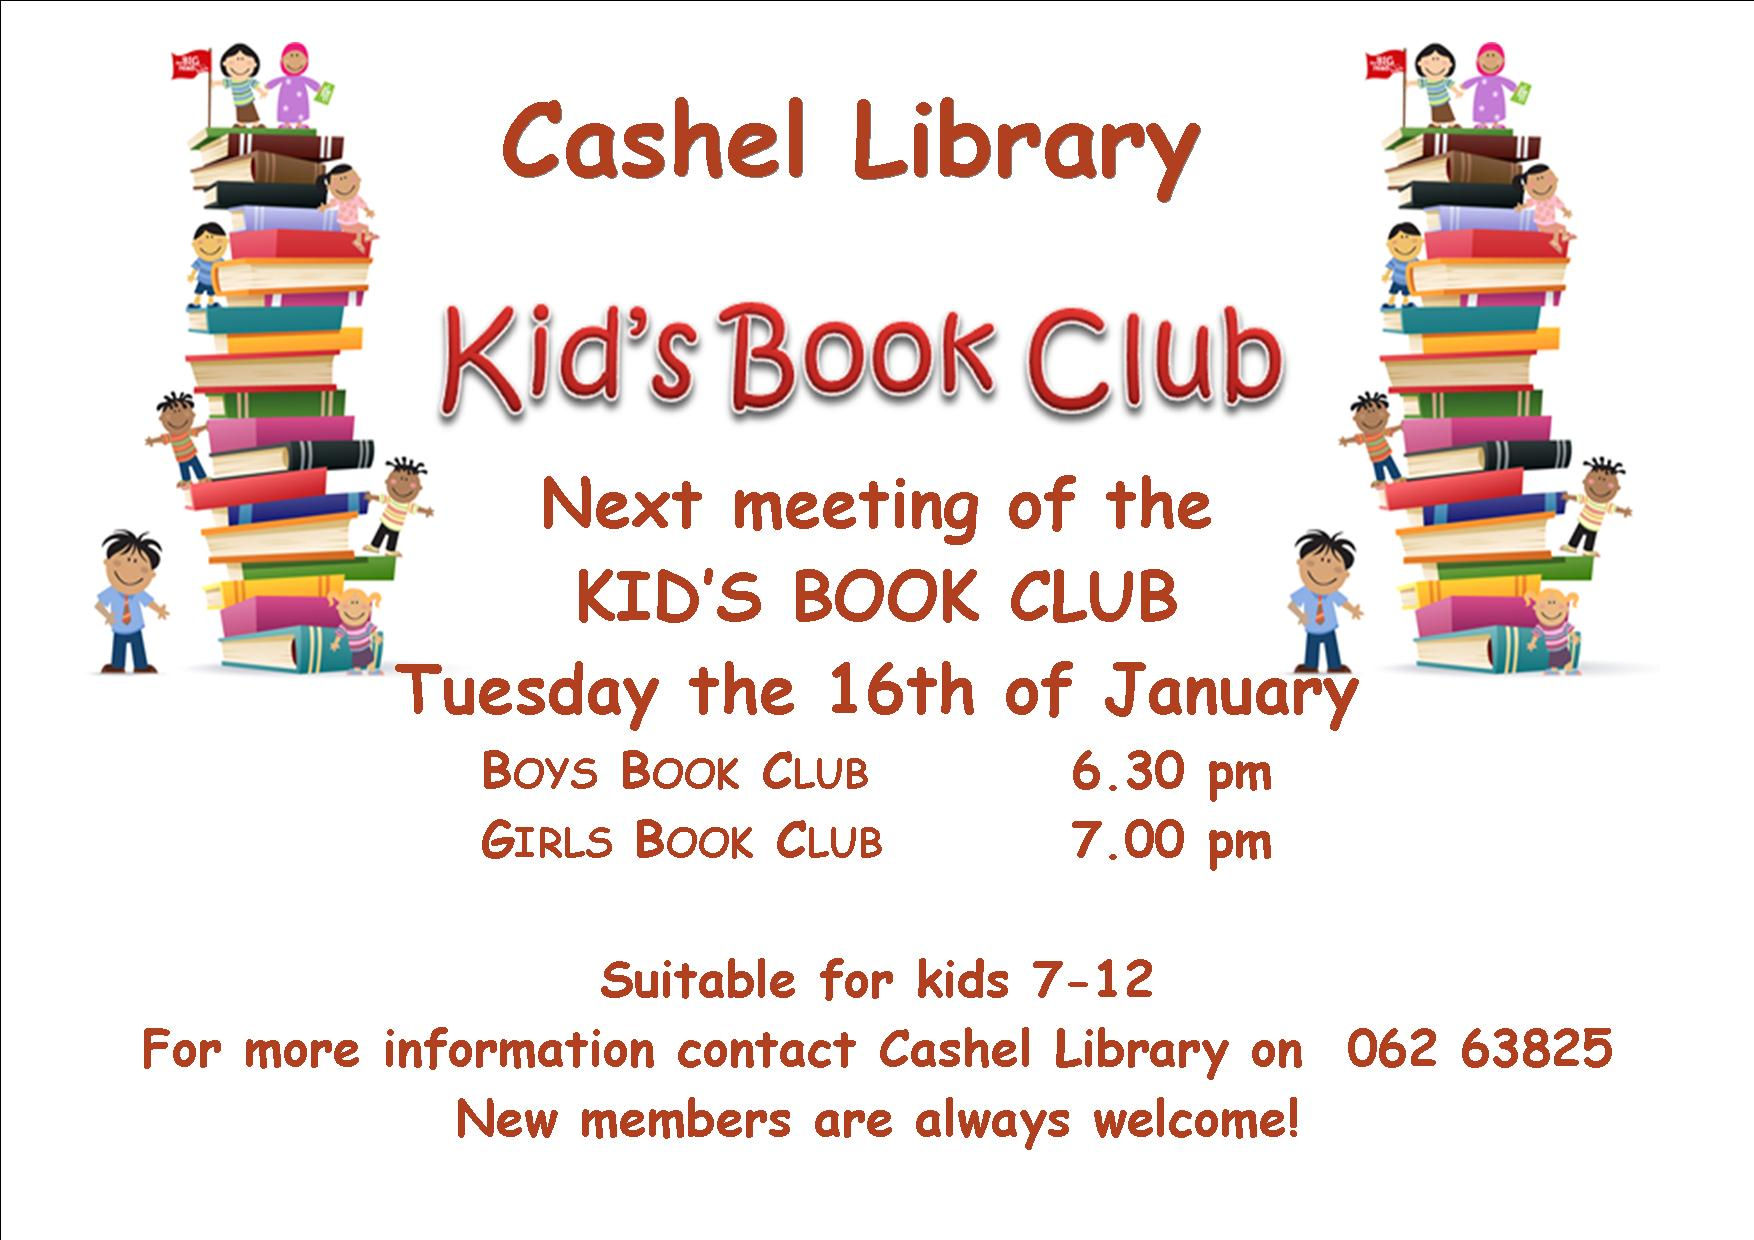 Next Kid's Book Club Meeting in Cashel Library